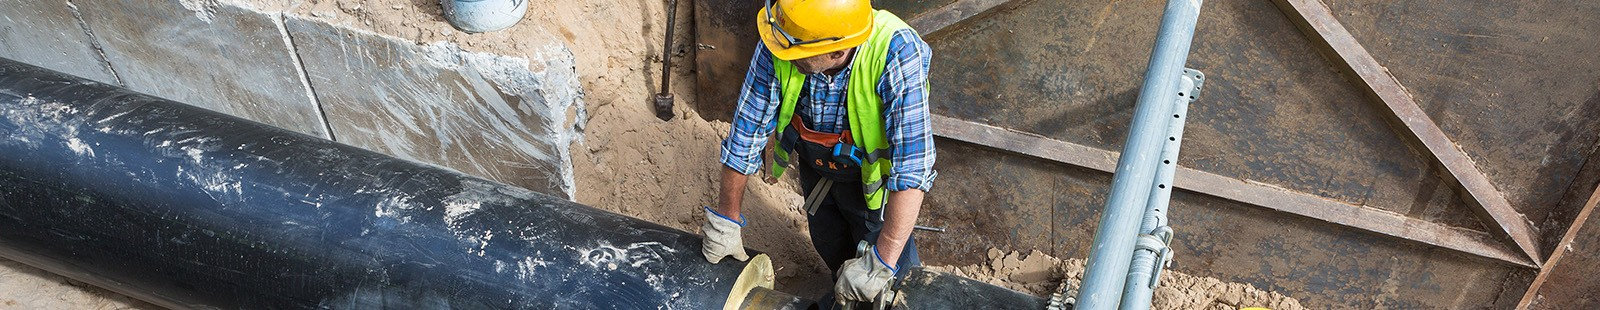 Removing Sewer Blockage Safely